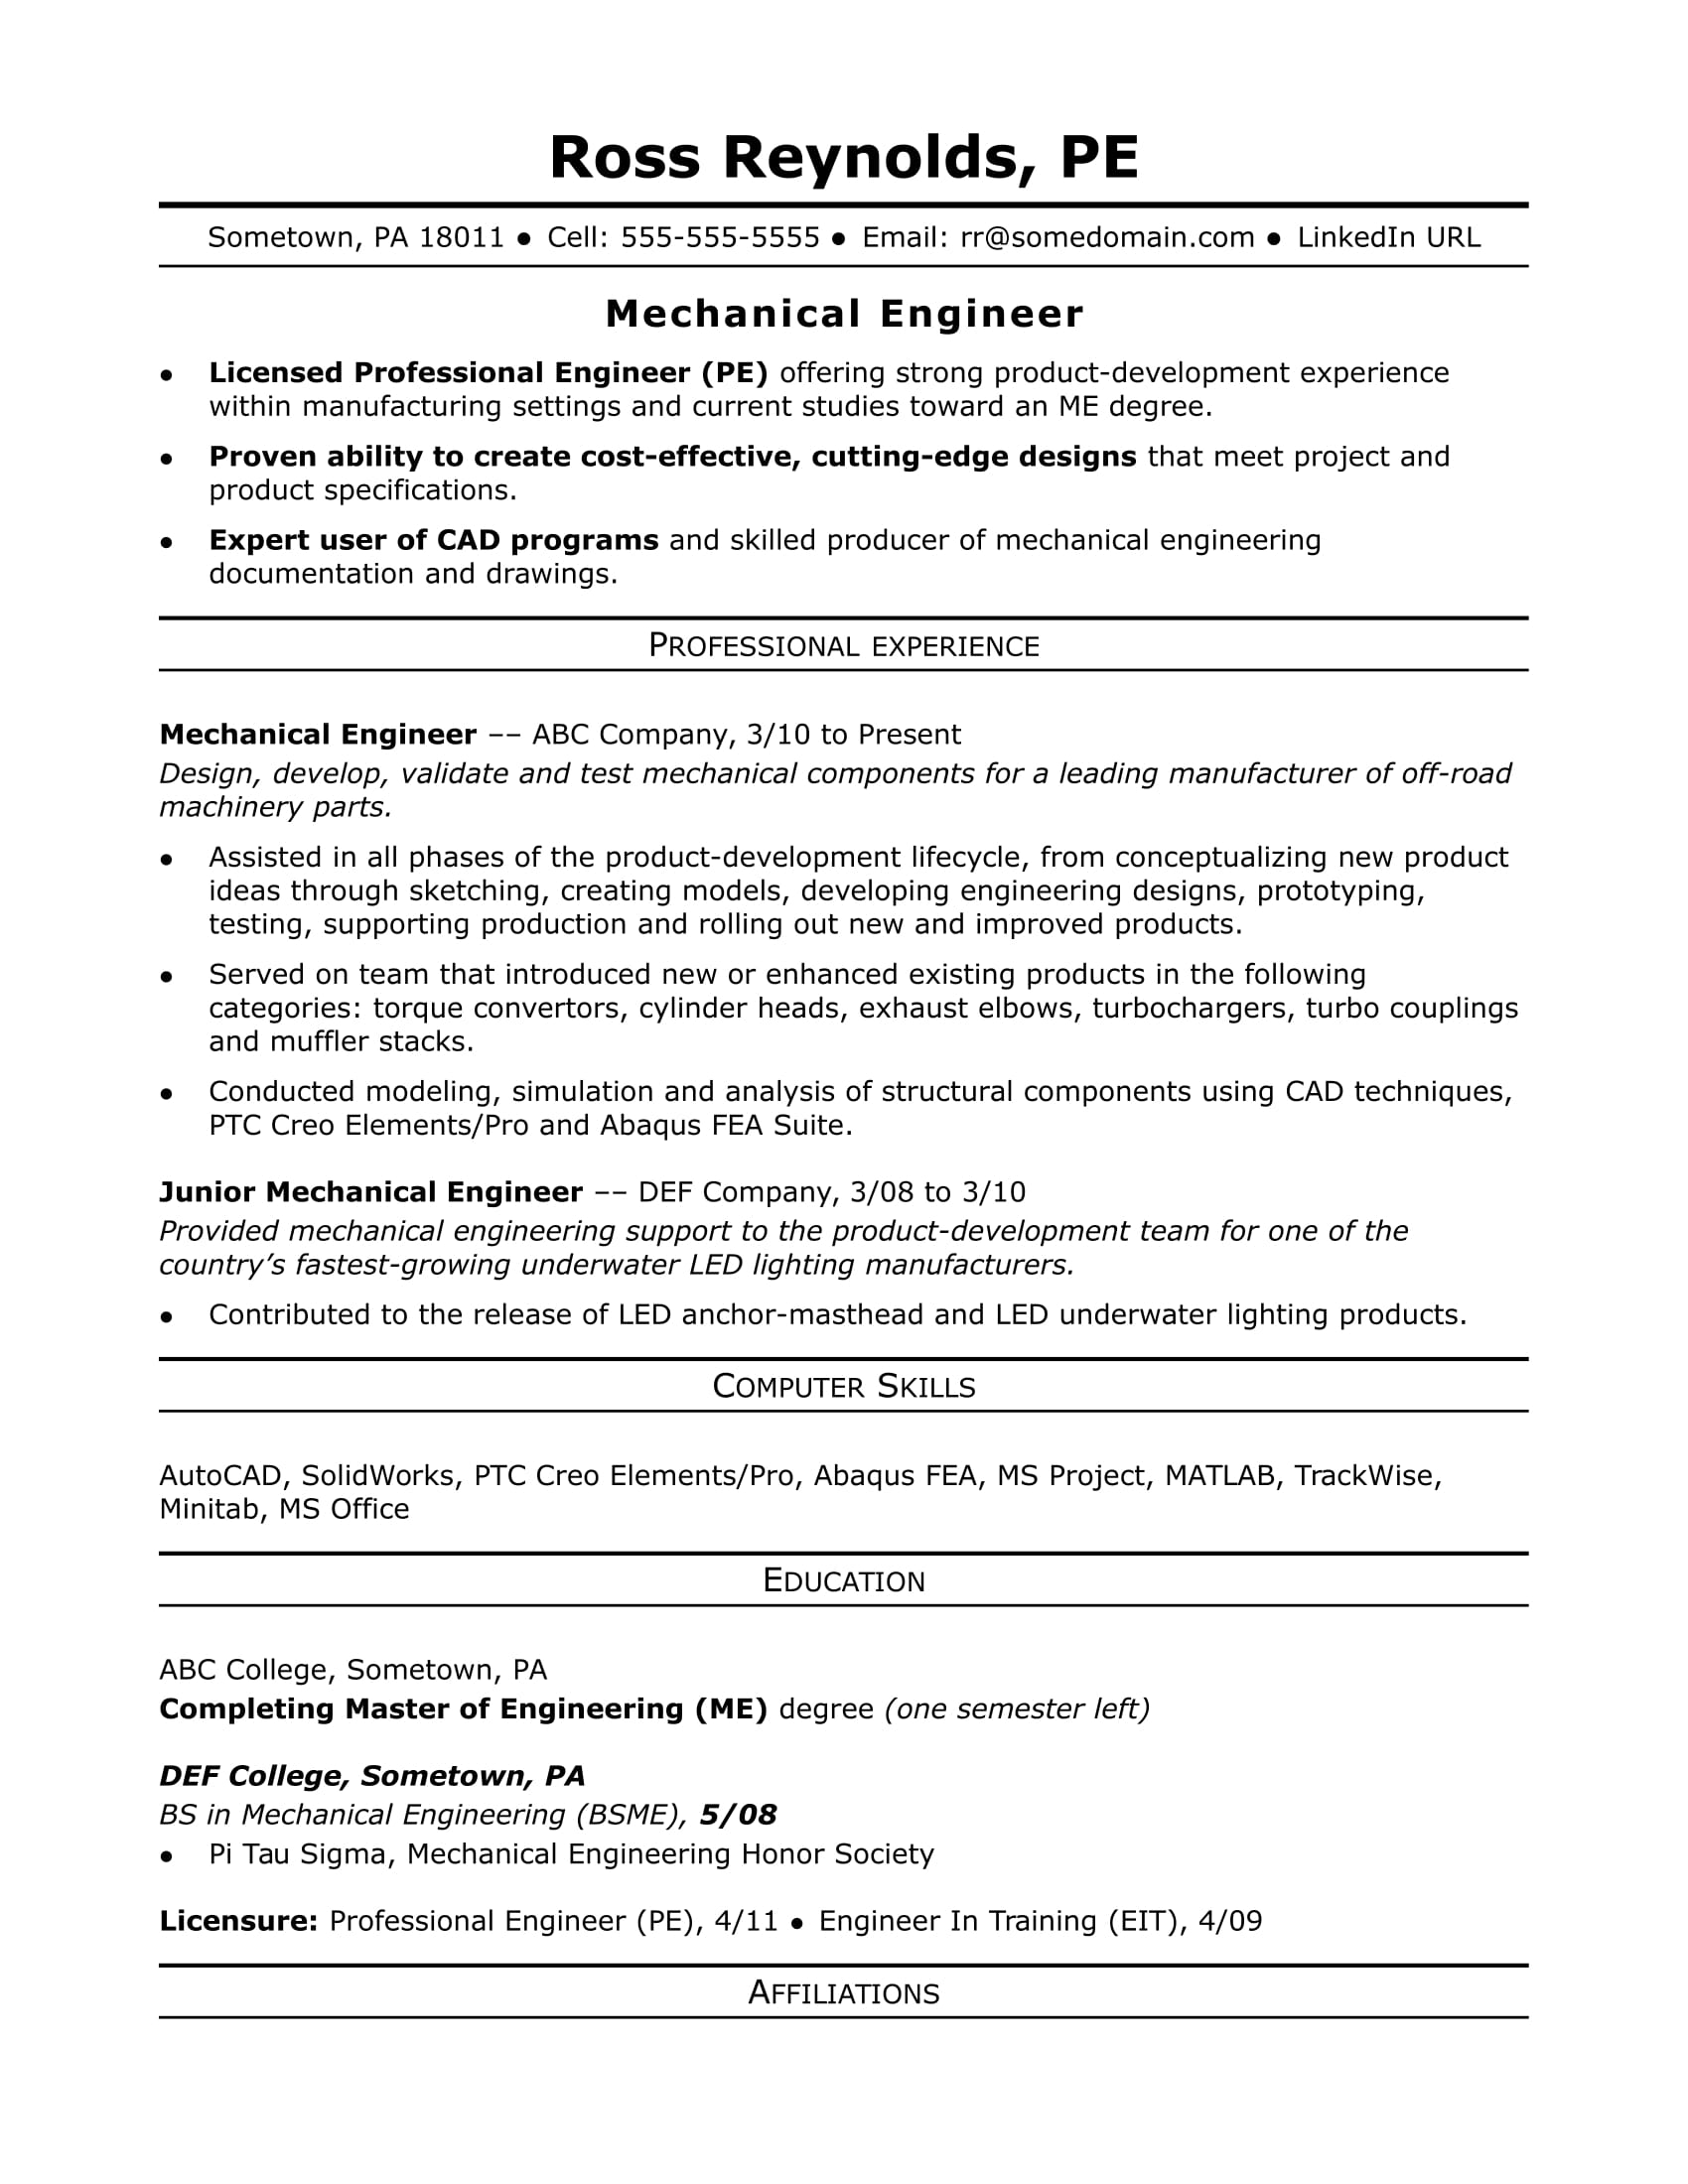 Attractive Sample Resume For A Midlevel Mechanical Engineer With Engineer Resume